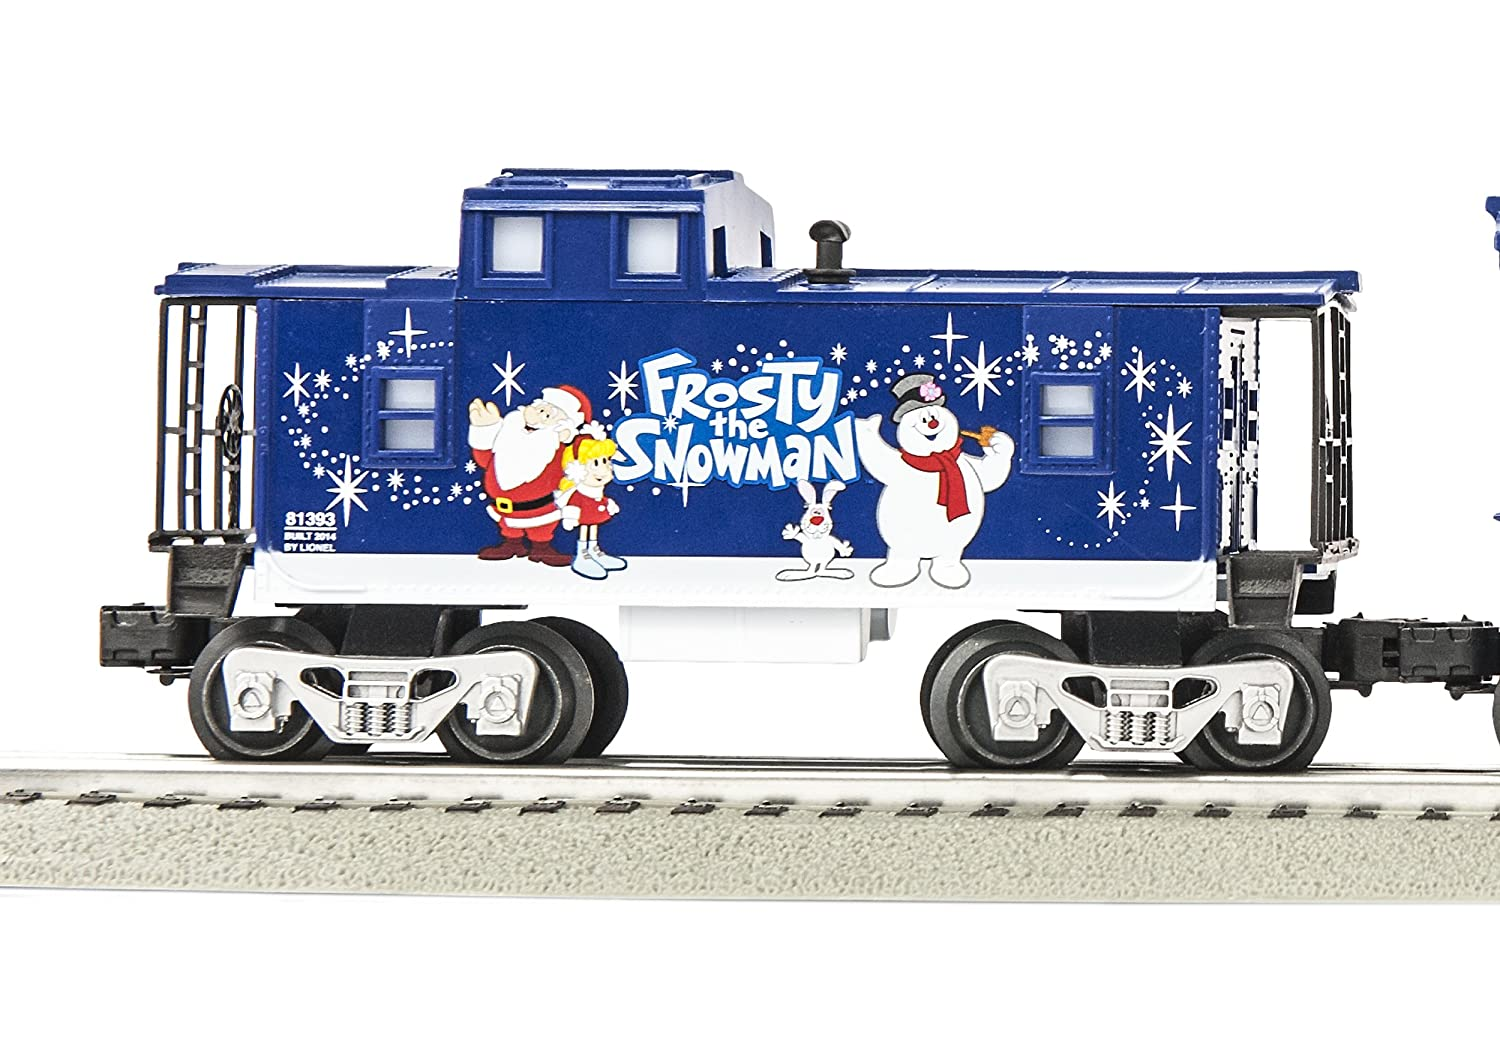 Frosty the Snowman Christmas train - Lionel Trains Frosty the Snowman Engine and Tender